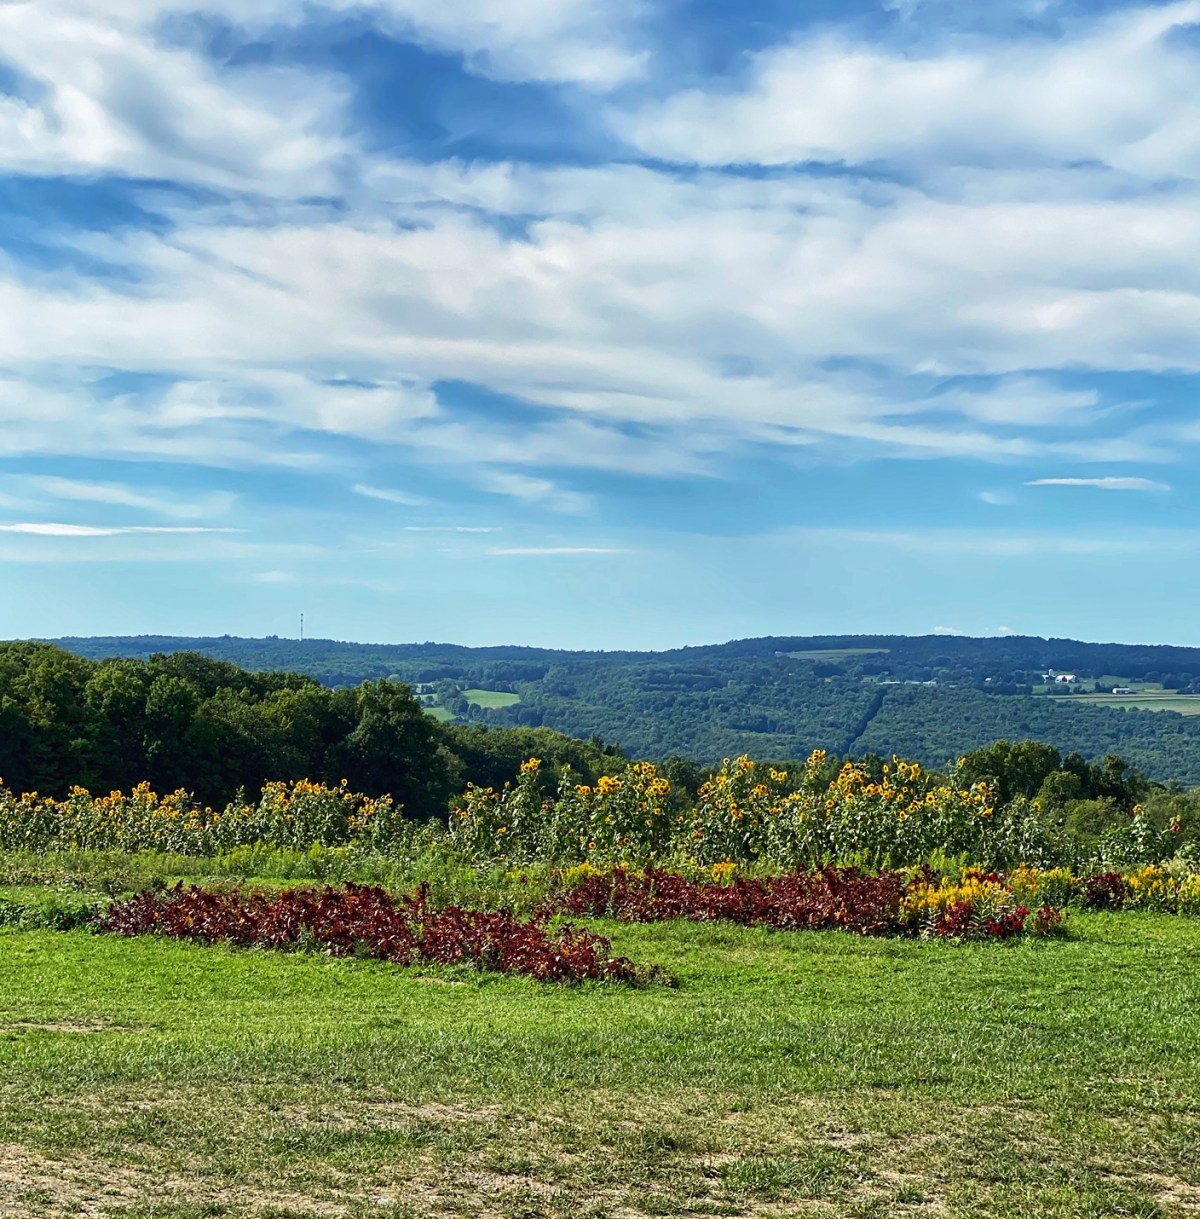 View from South Hill Cider #southhillcider #ithacany #whattodoinithacany #hardciderithacany #hardciderfingerlakesny #fingerlakesny #fingerlakesvacation #ithacaweekend